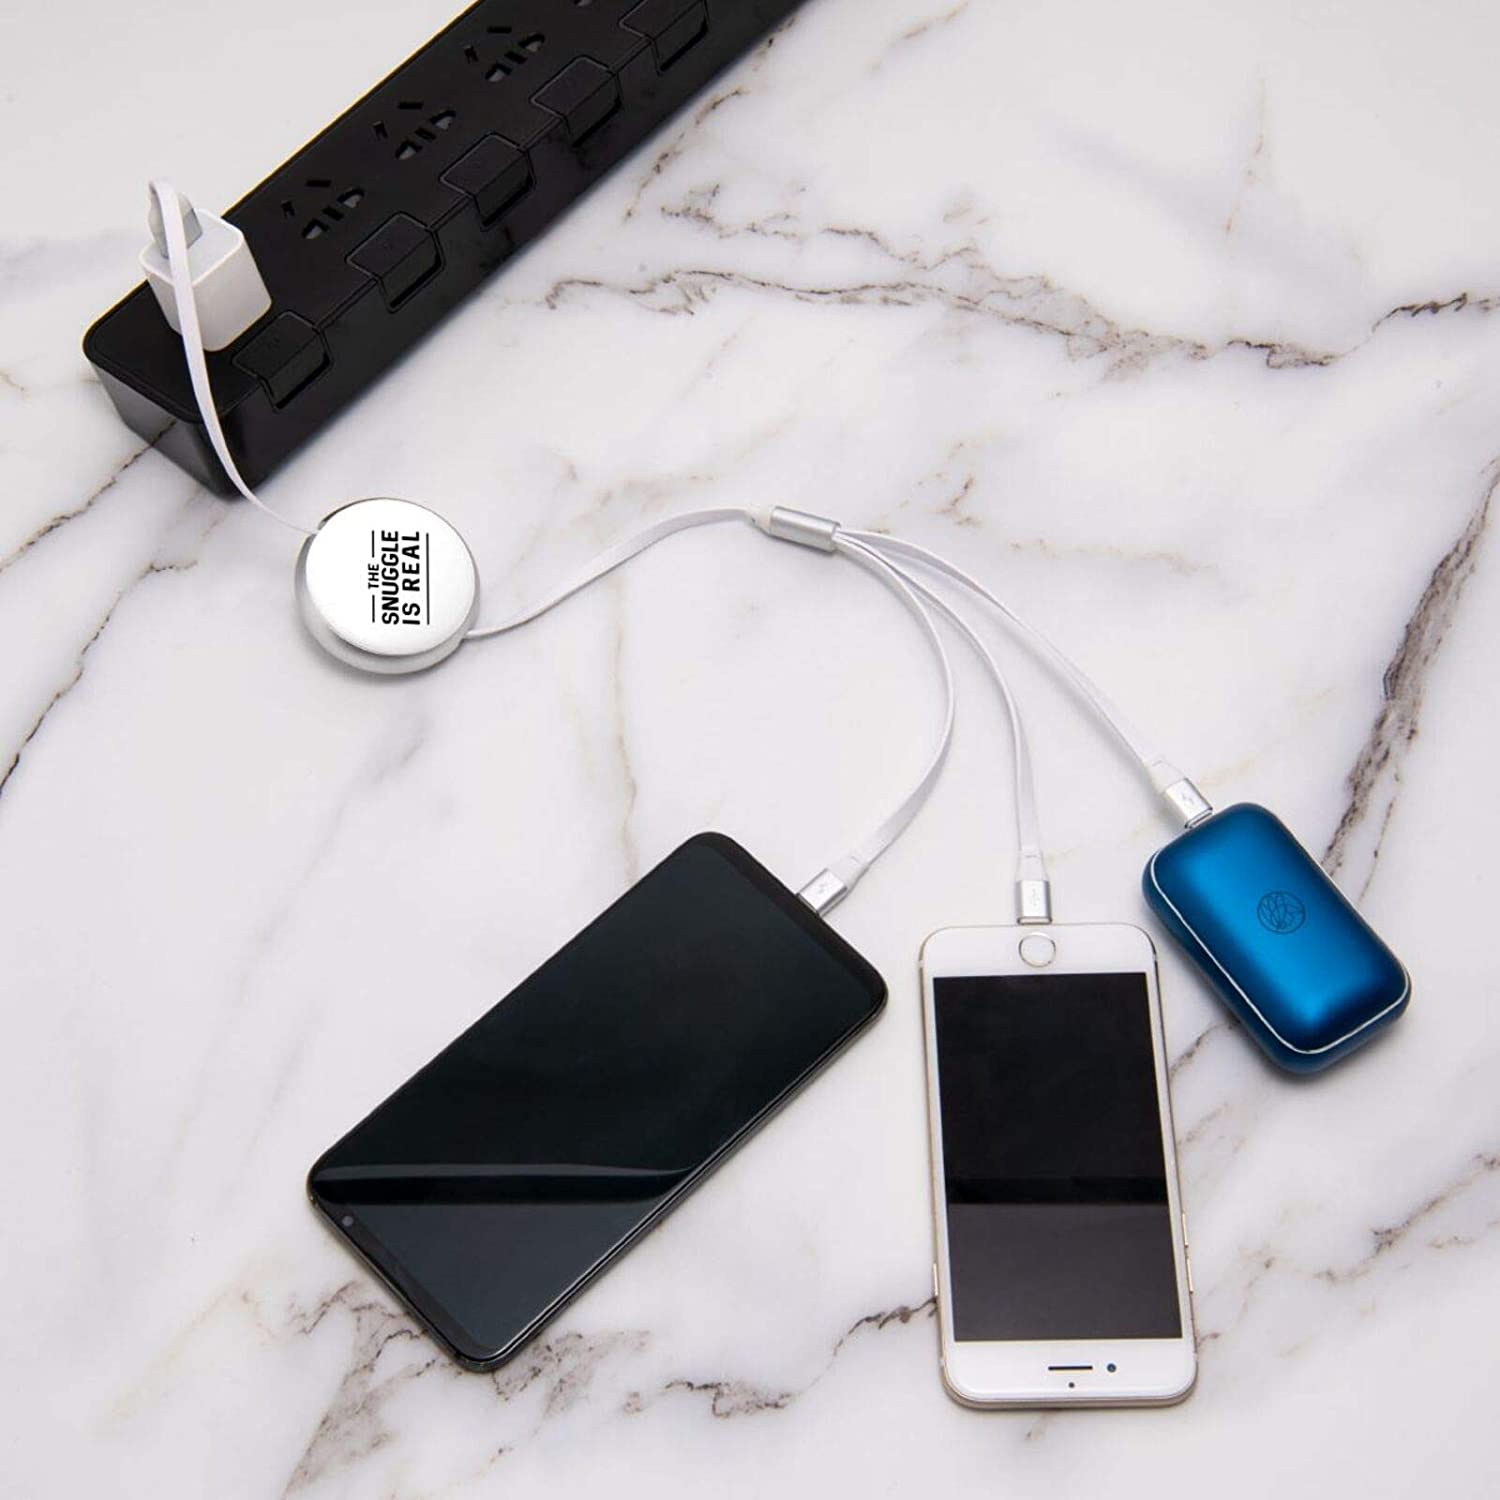 Multi Charging Cable Portable 3 in 1 The Snuggle is Real Graphic USB Cable USB Power Cords for Cell Phone Tablets and More Devices Charging